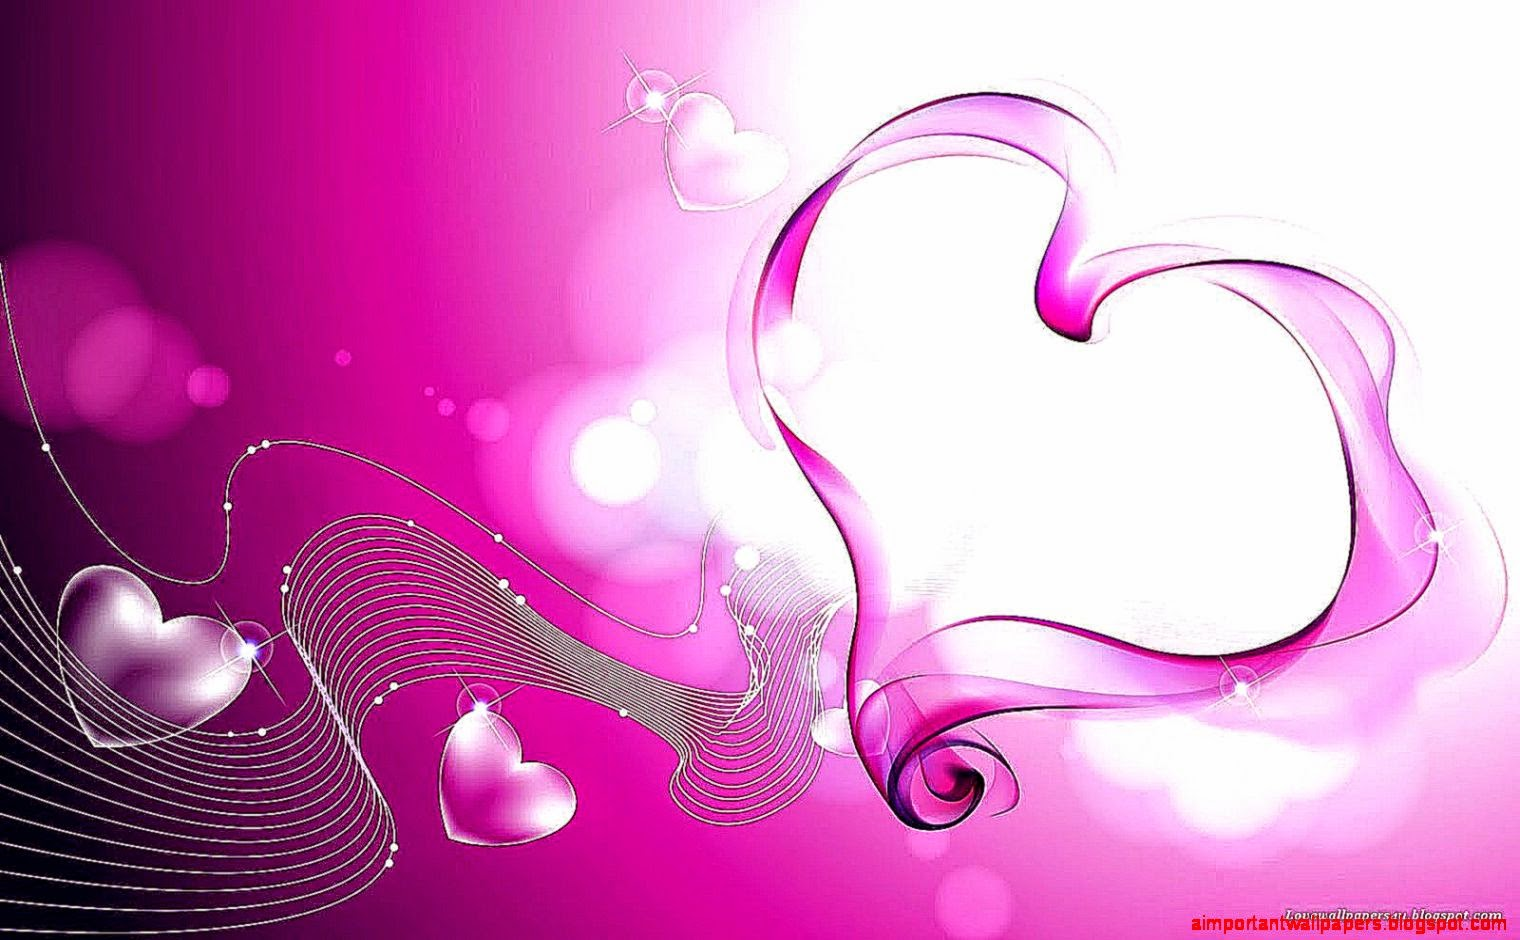 Background Love Wallpapers   Important Wallpapers